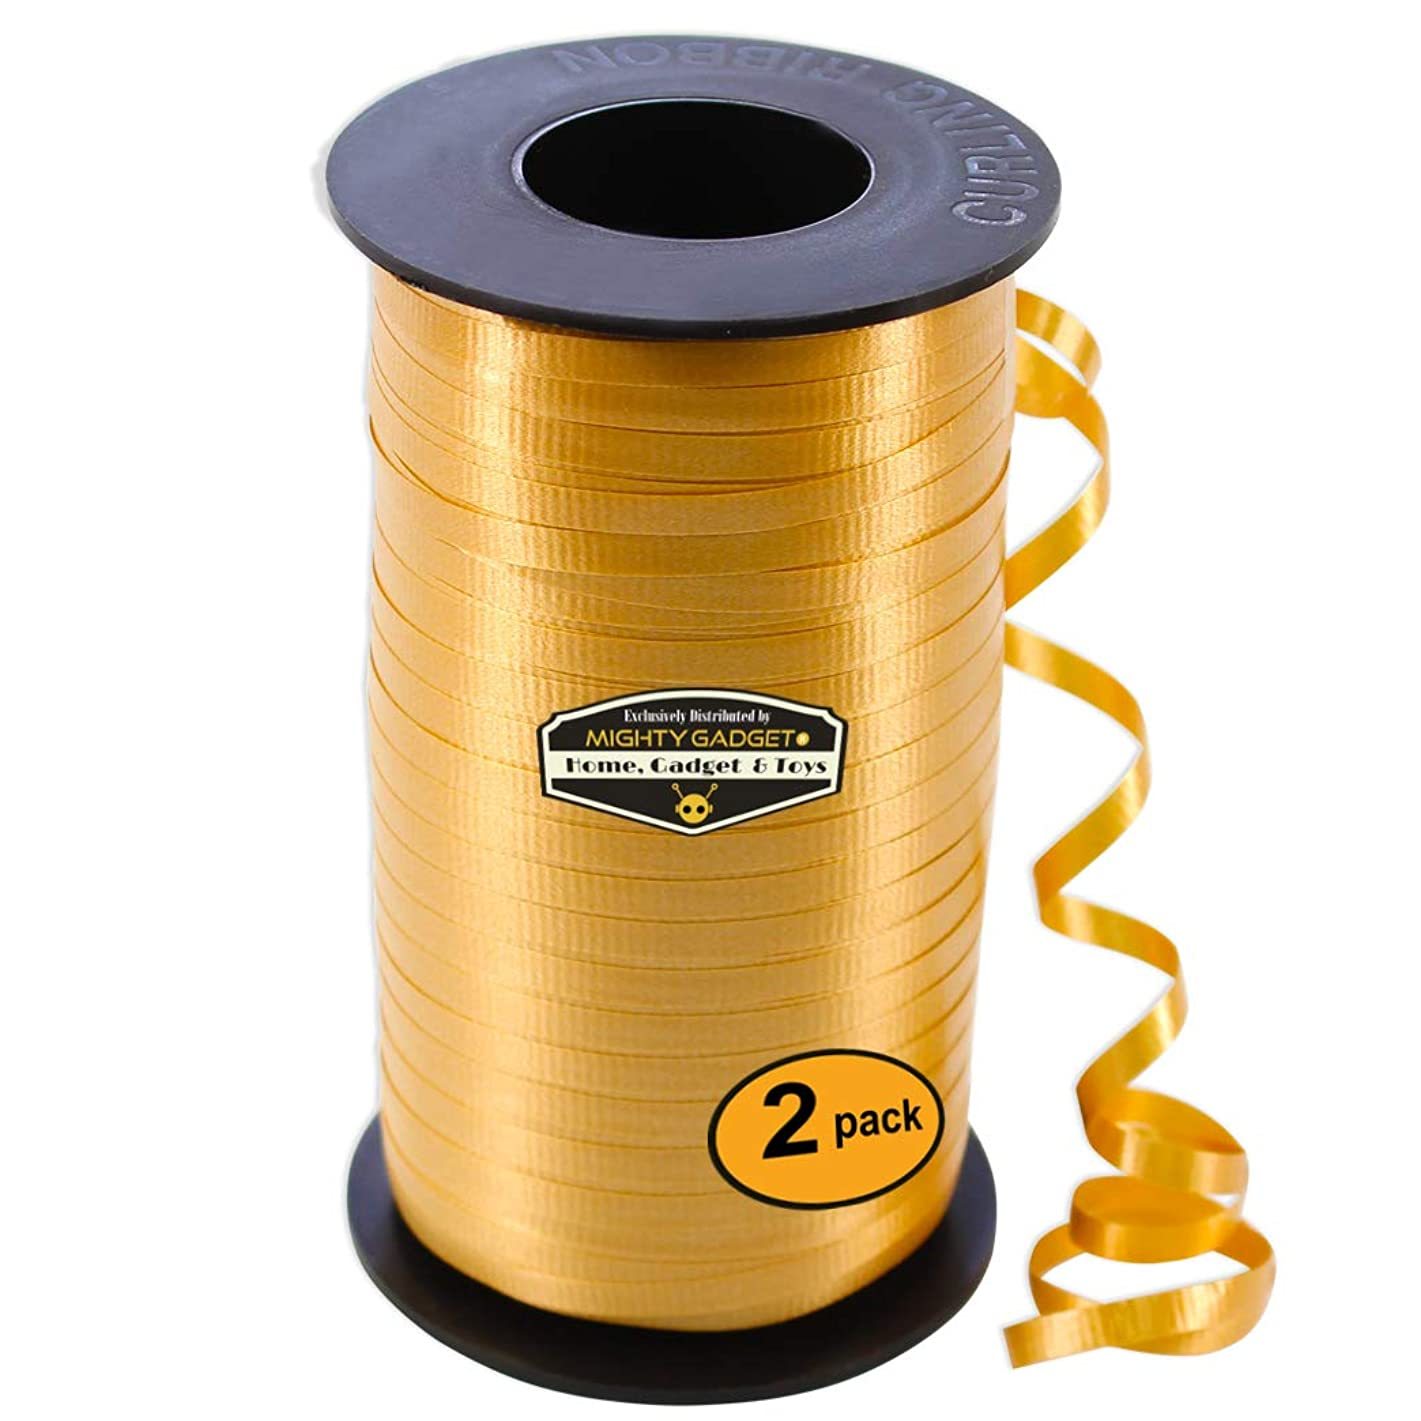 2 Pack of Mighty Gadget Matte Gold Curling Ribbon & Ballon Ribbon 3/16-Inch Wide by 1500 feet Long Spool